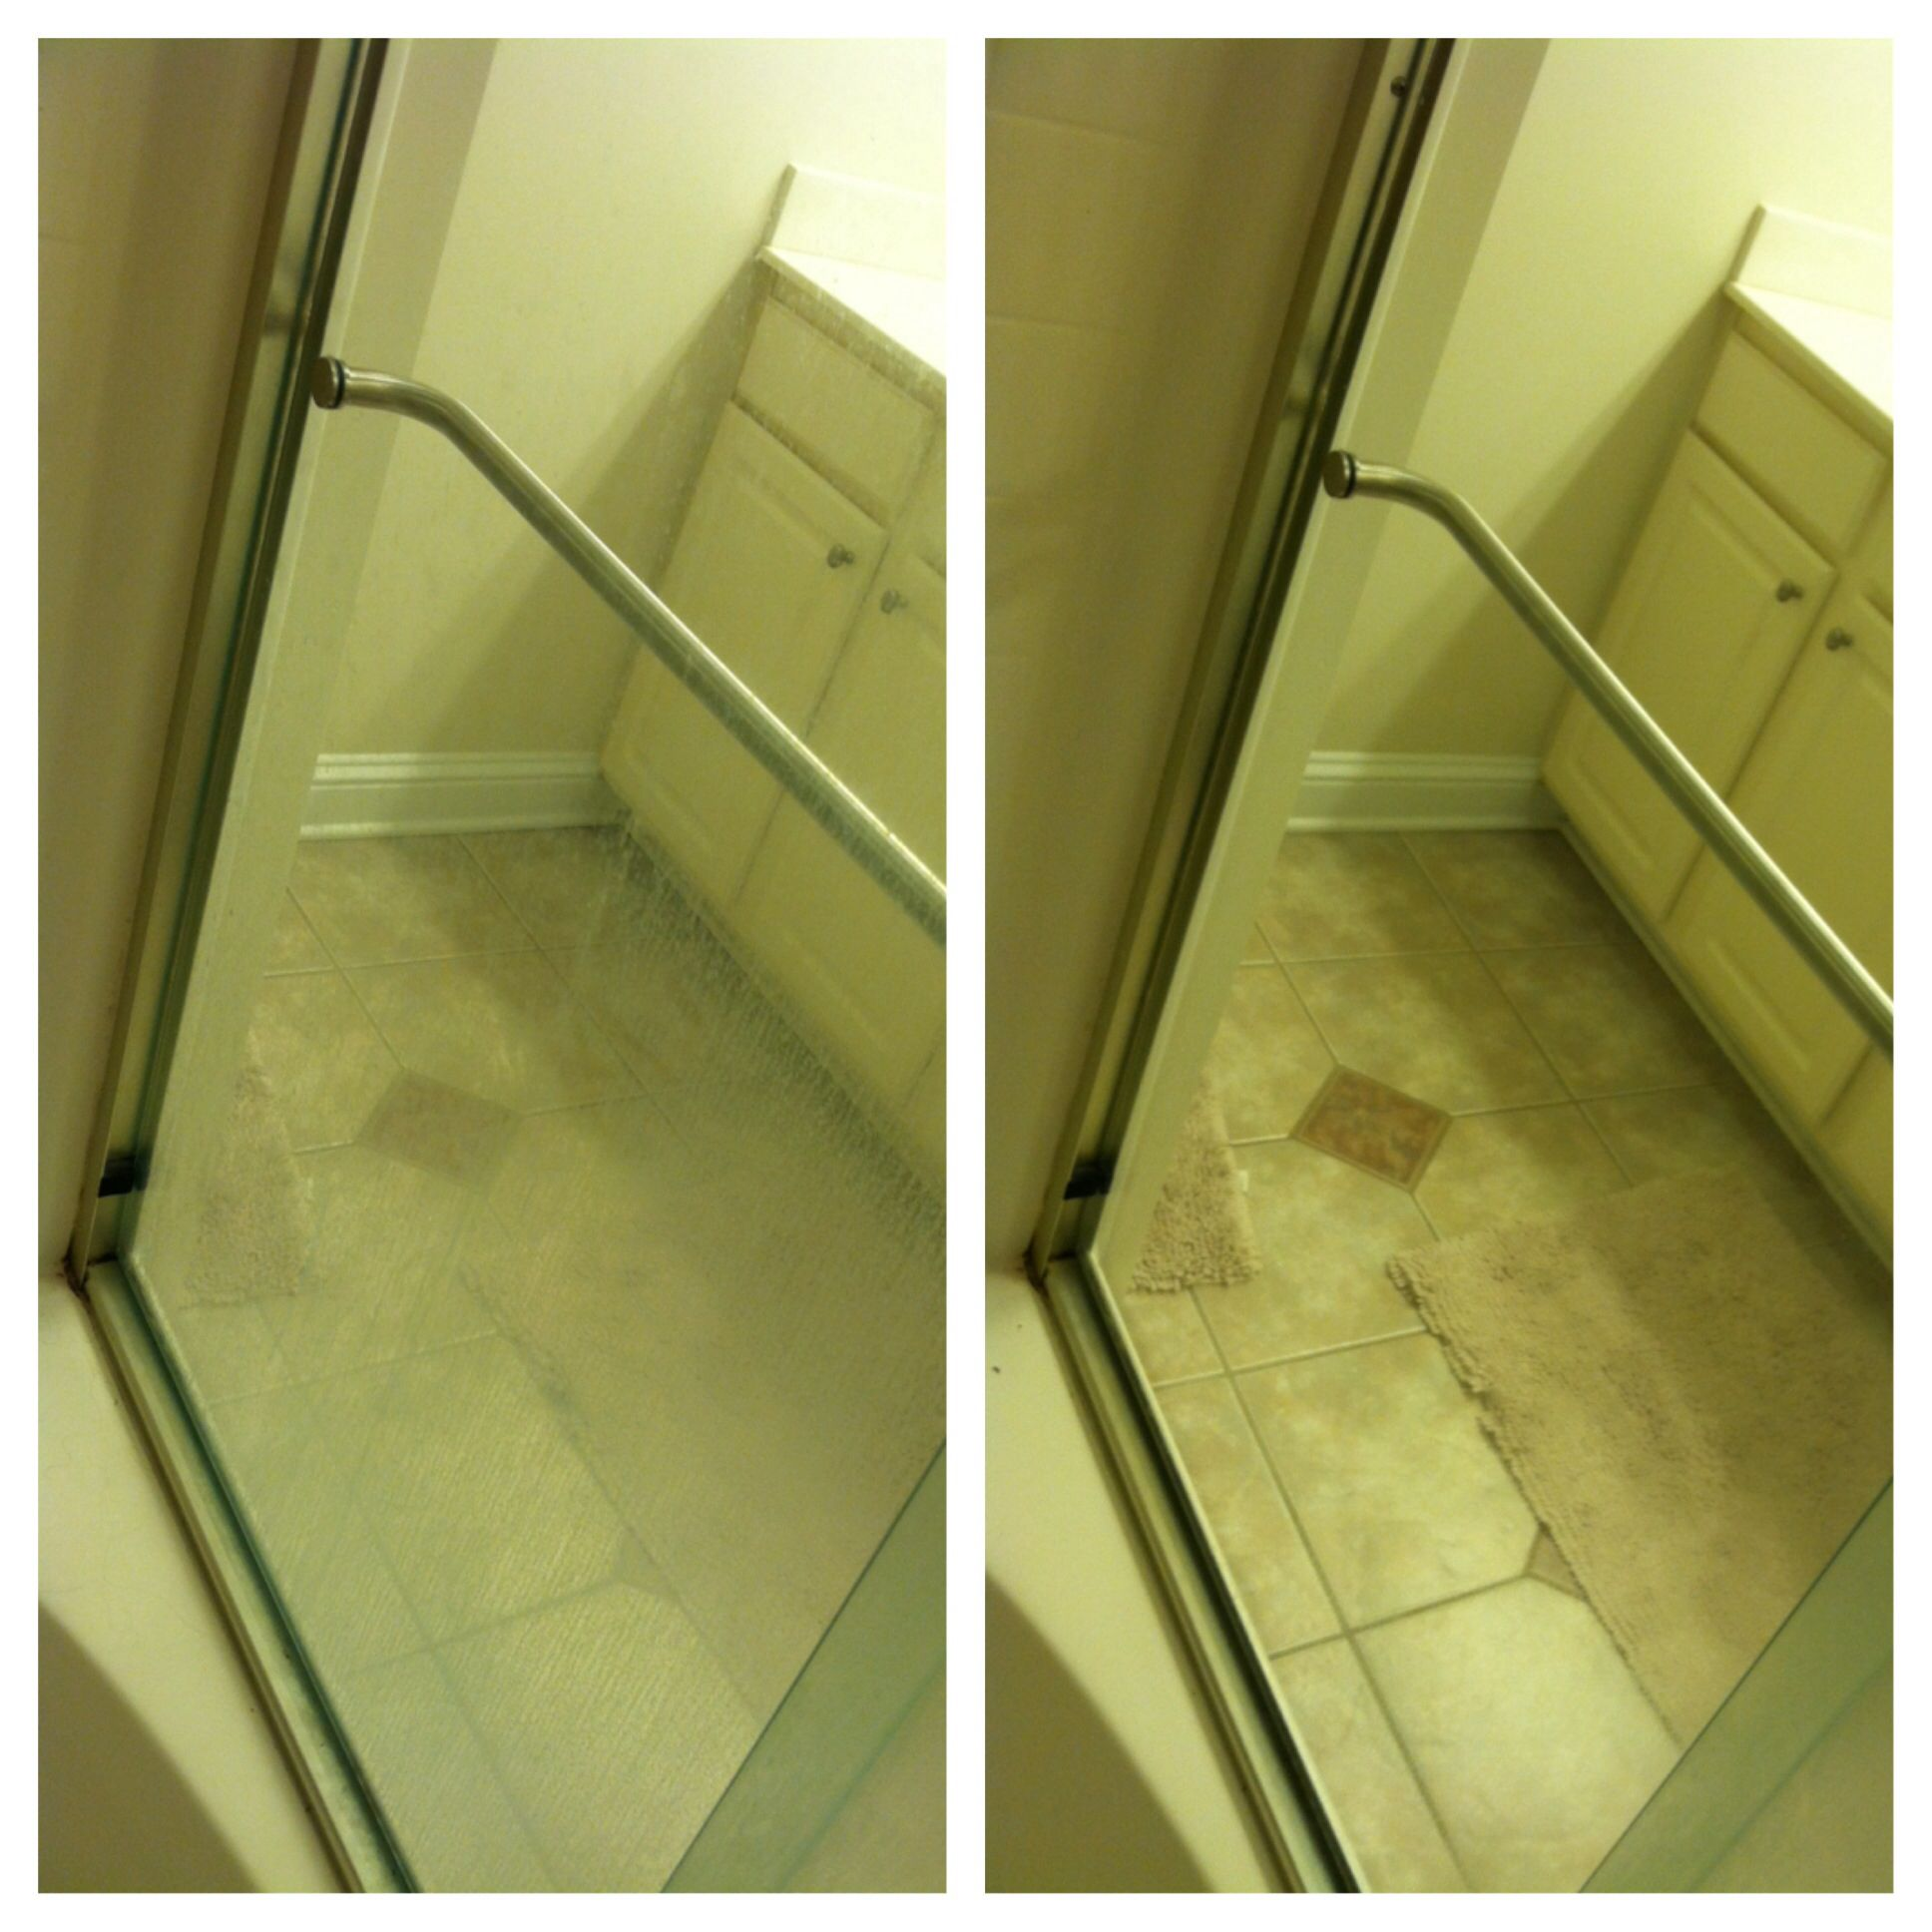 My Glass Shower Door Before And After Cleaning With A Wet